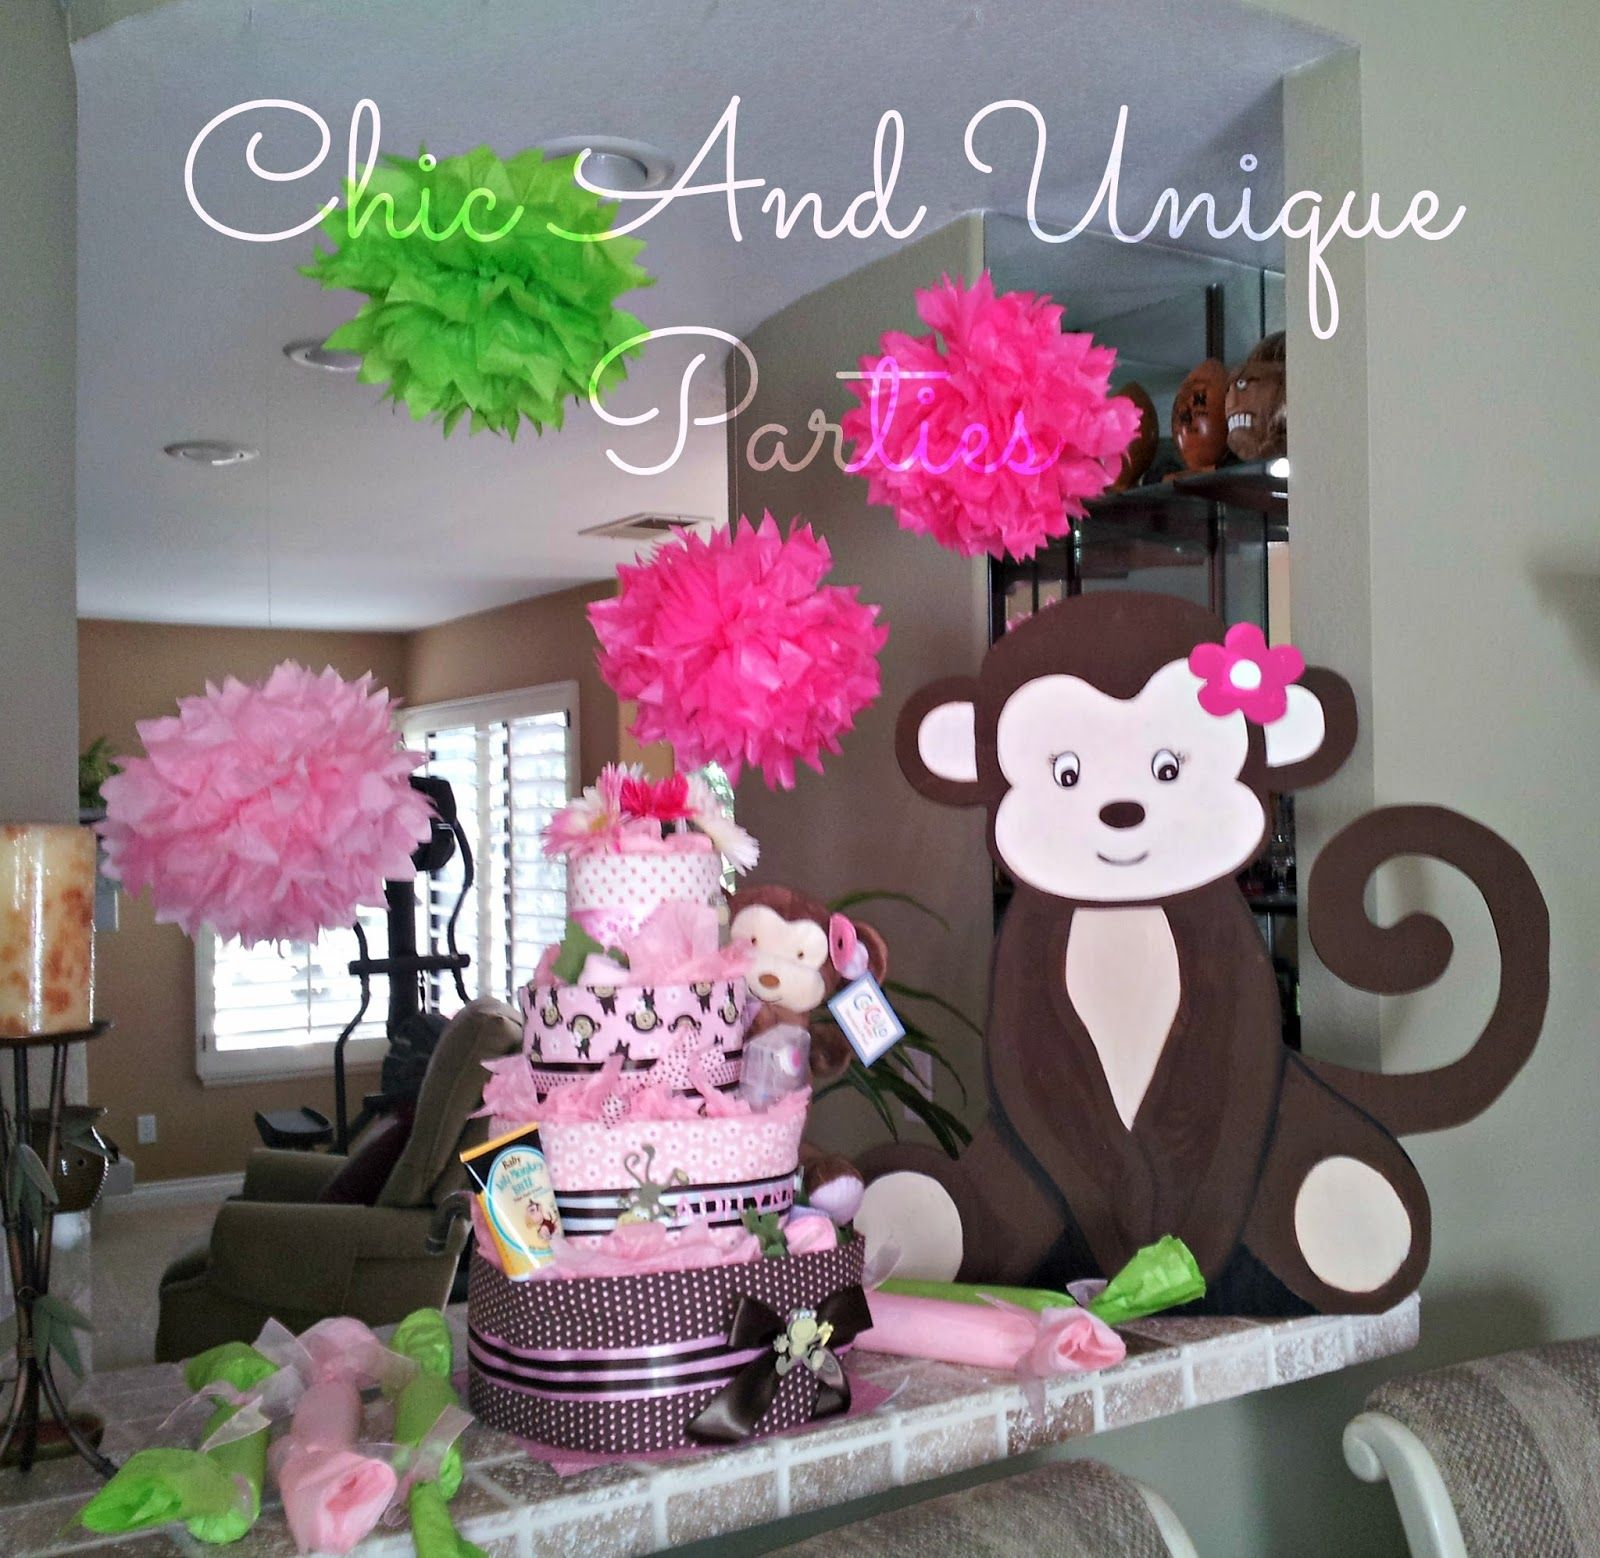 Chic And Unique Parties: Girl Monkey Baby Shower   1600x1558   Jpeg